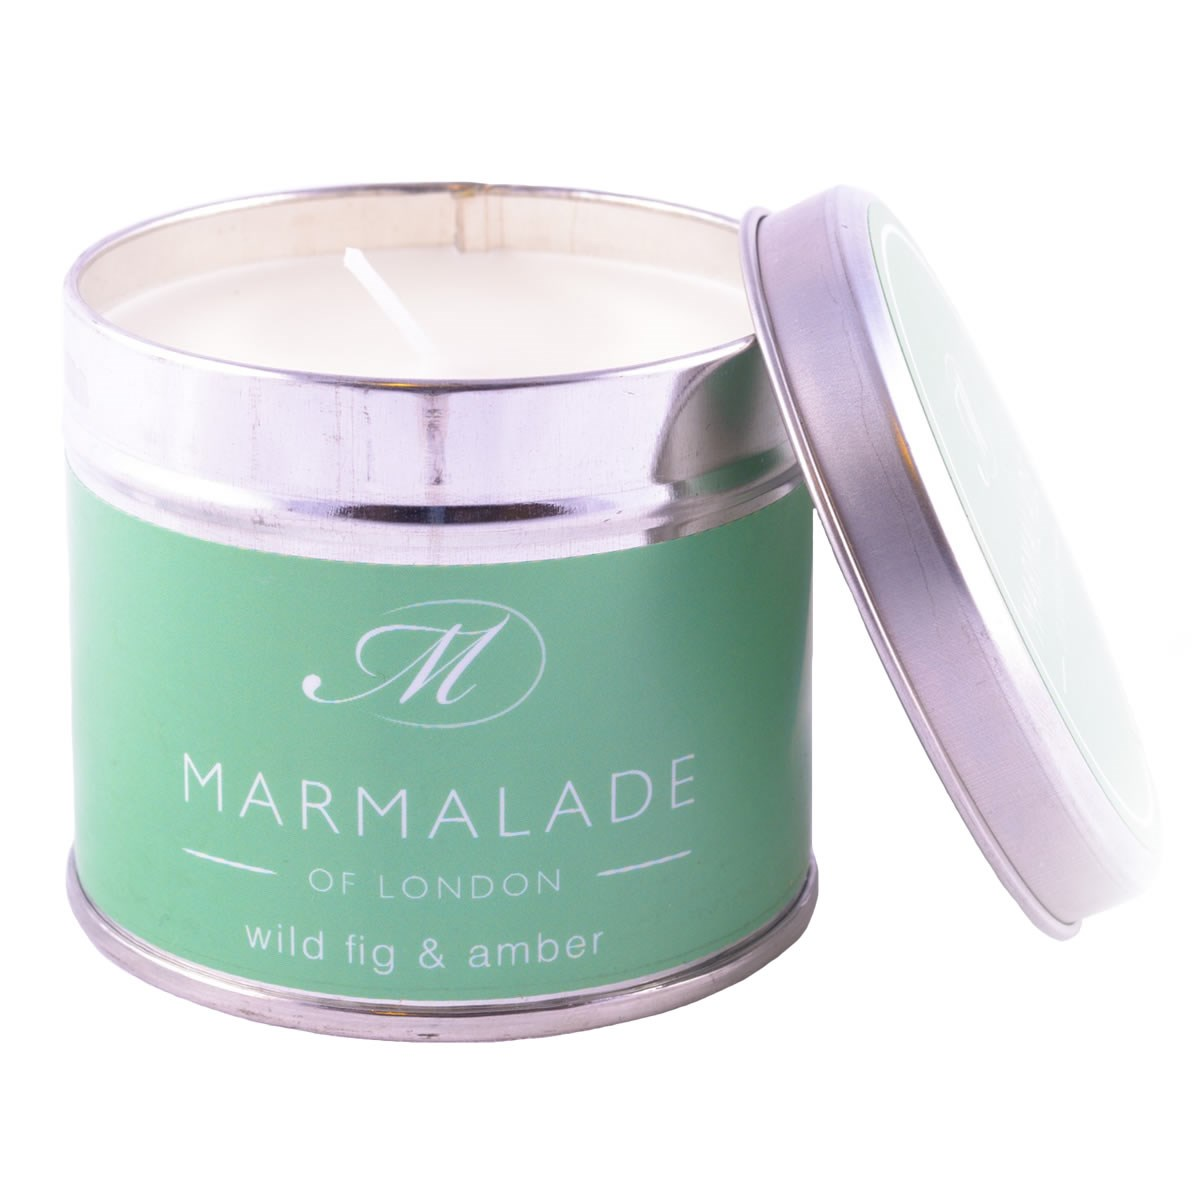 Marmalade of London Wild Fig & Amber Candle